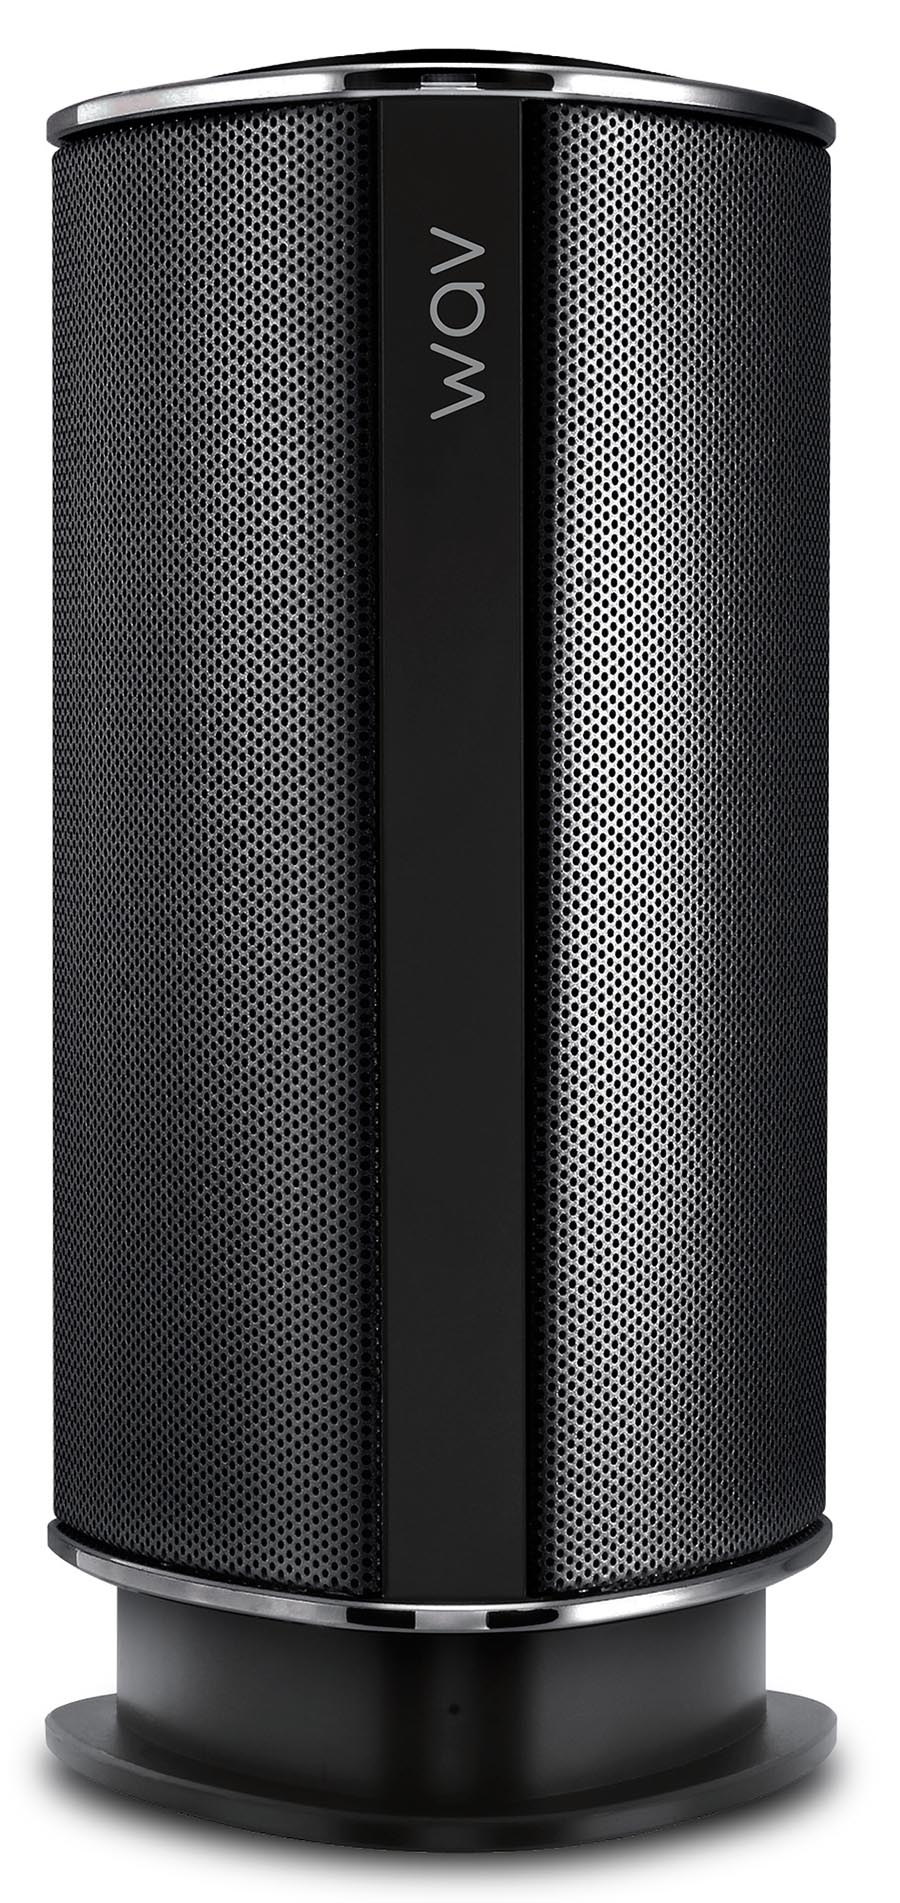 test bluetooth speaker roundup teil 5 allround. Black Bedroom Furniture Sets. Home Design Ideas